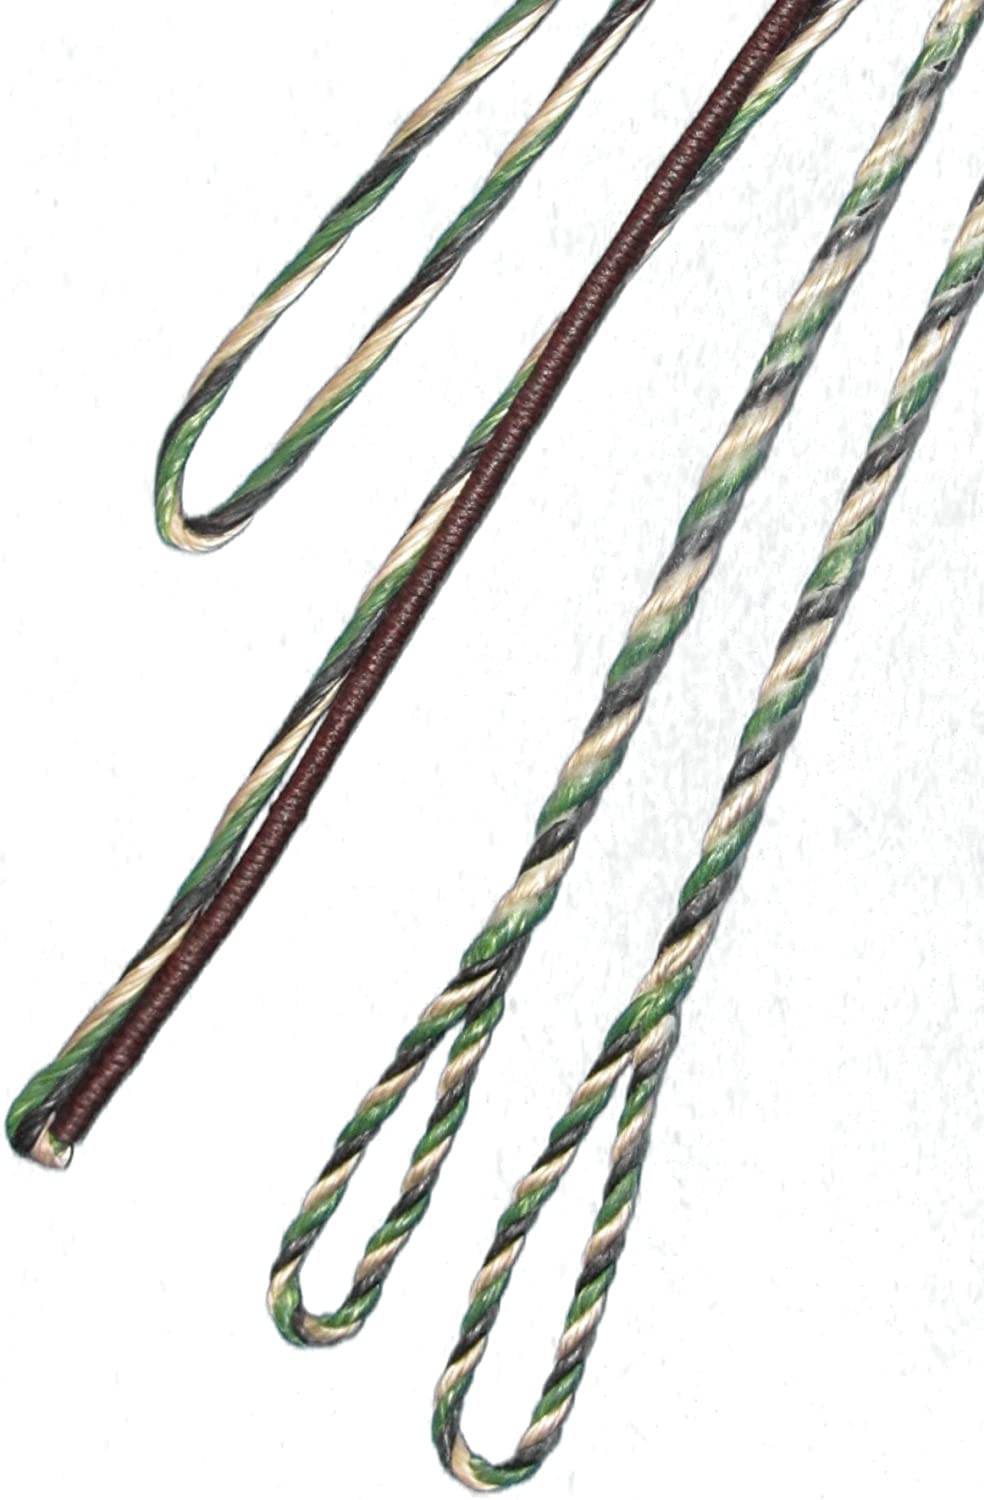 """63/"""" ACTUAL INCH LENGTH FASTFLIGHT FAST FLIGHT Recurve Bow String BOWSTRING 63"""